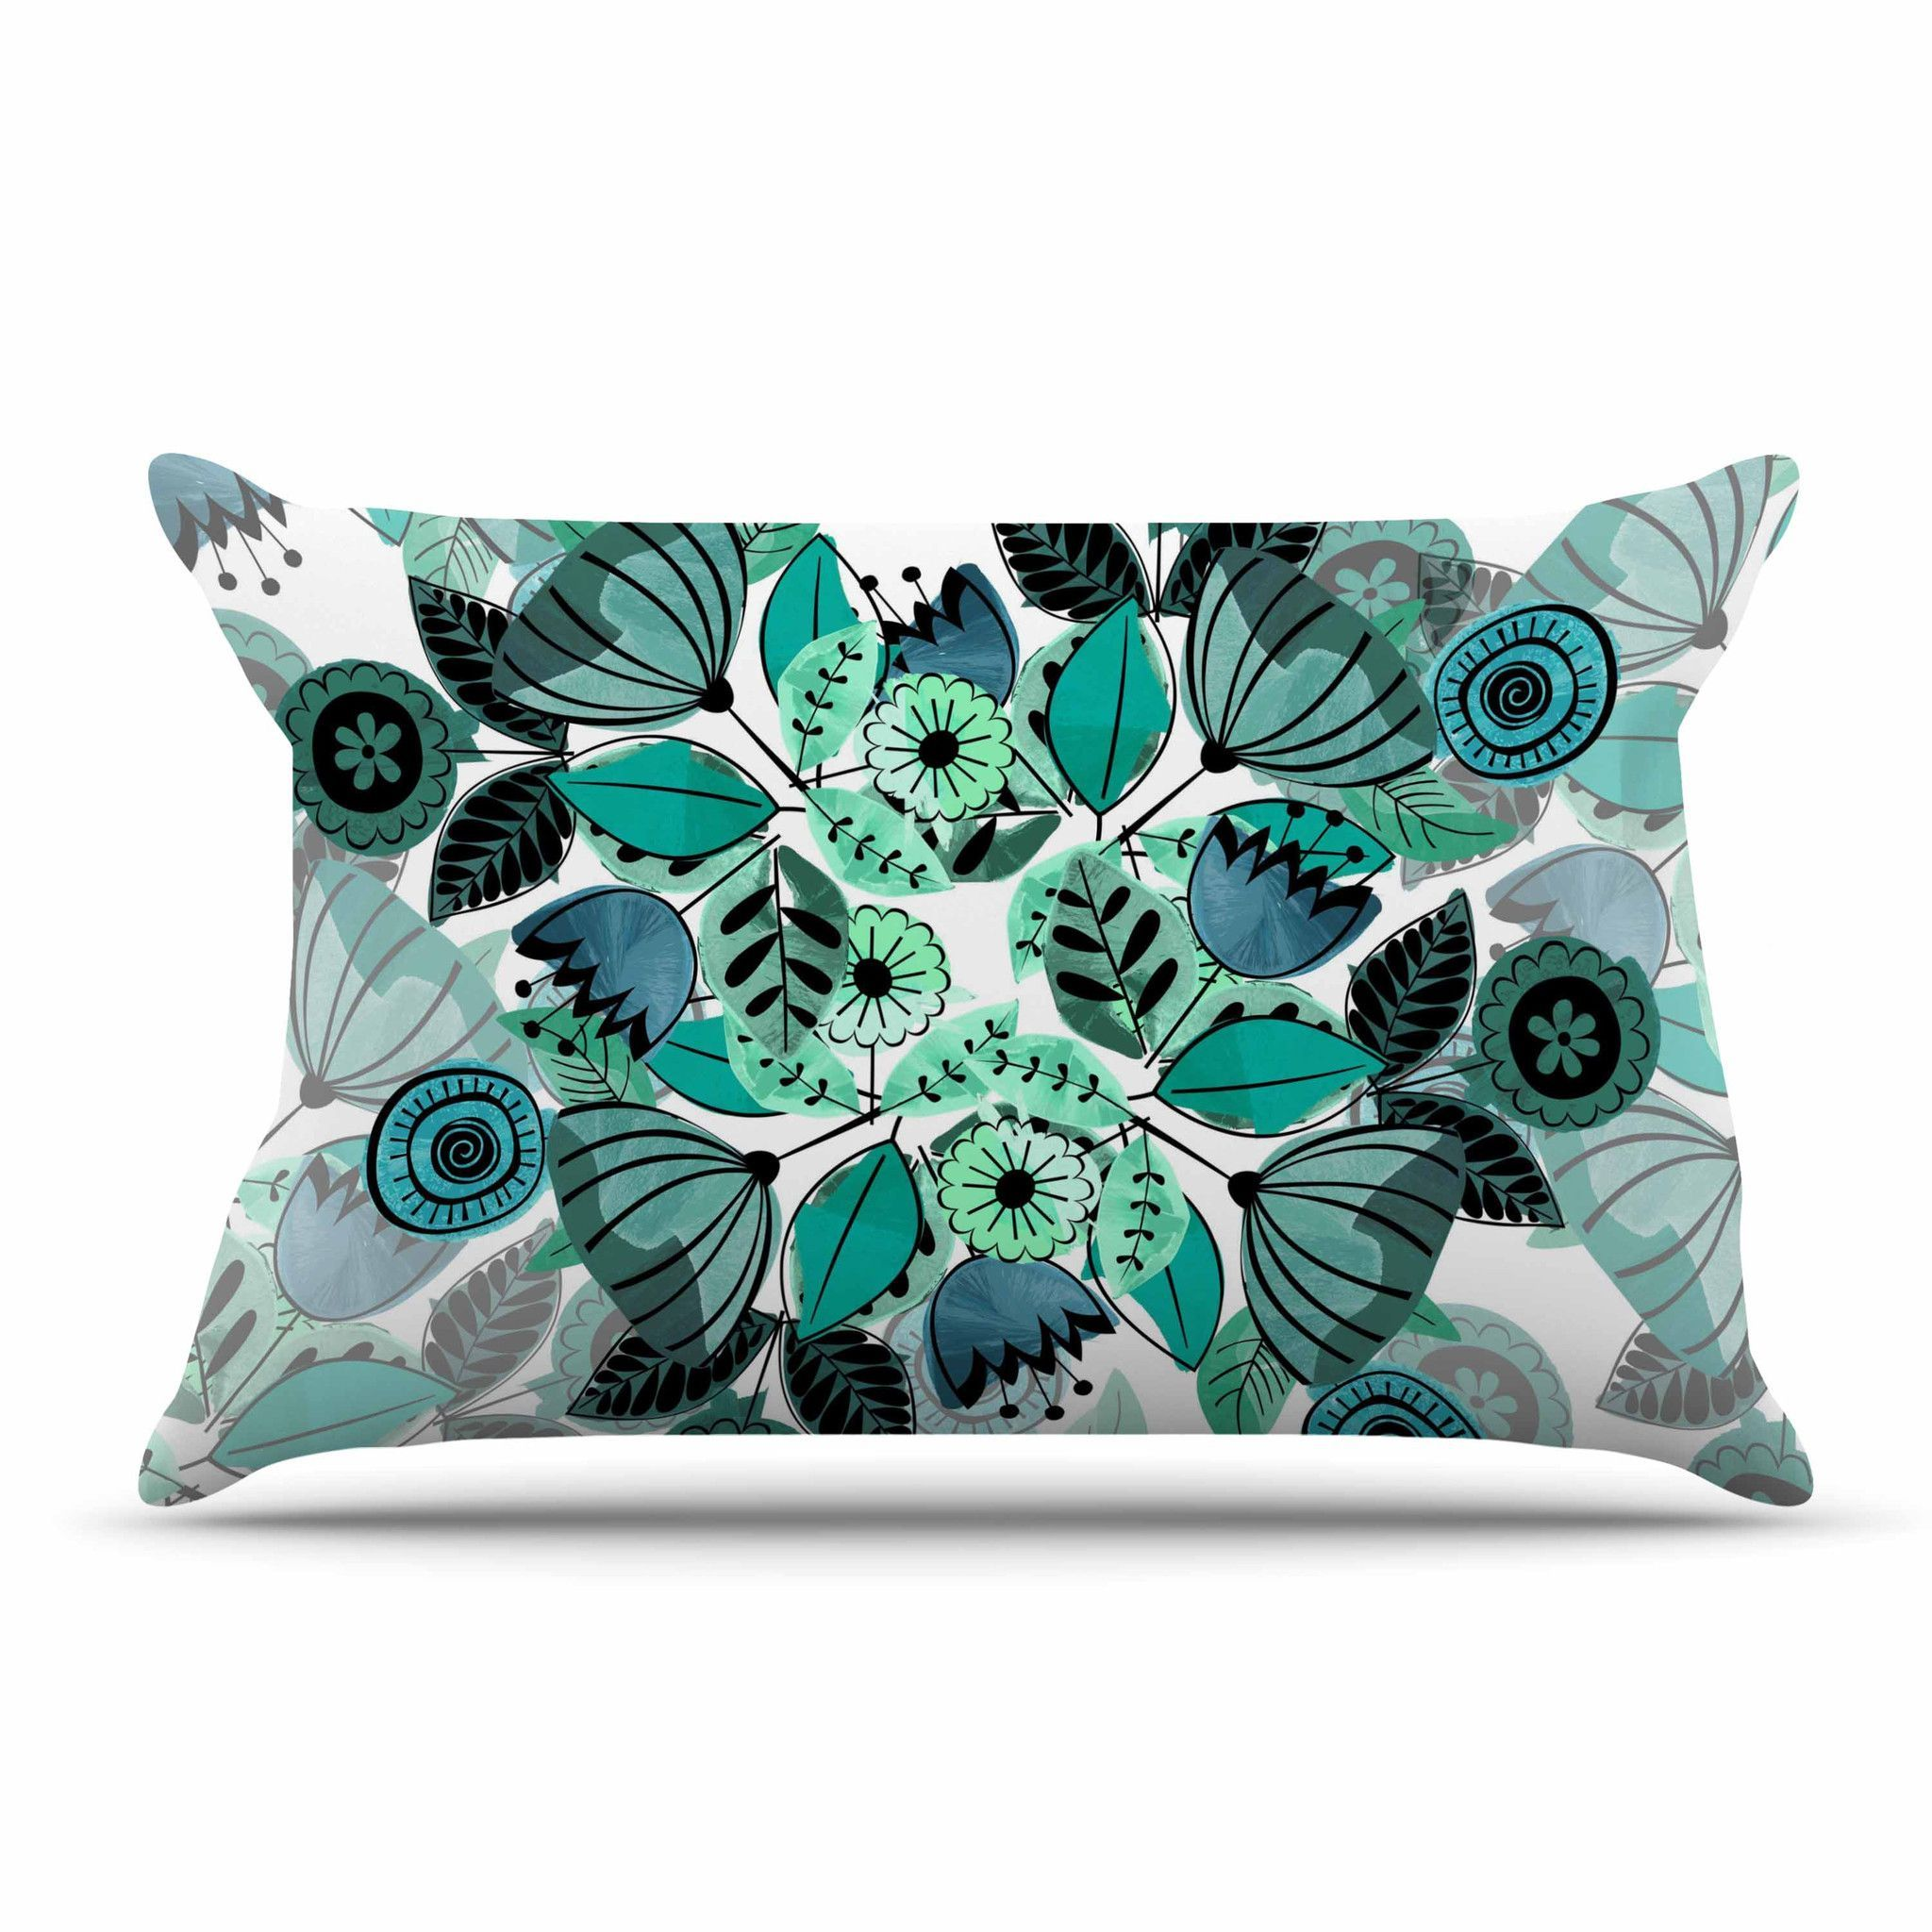 Sognare Cuscini.Famenxt Mint Sognare Green Abstract Pillow Case Floral Pillows